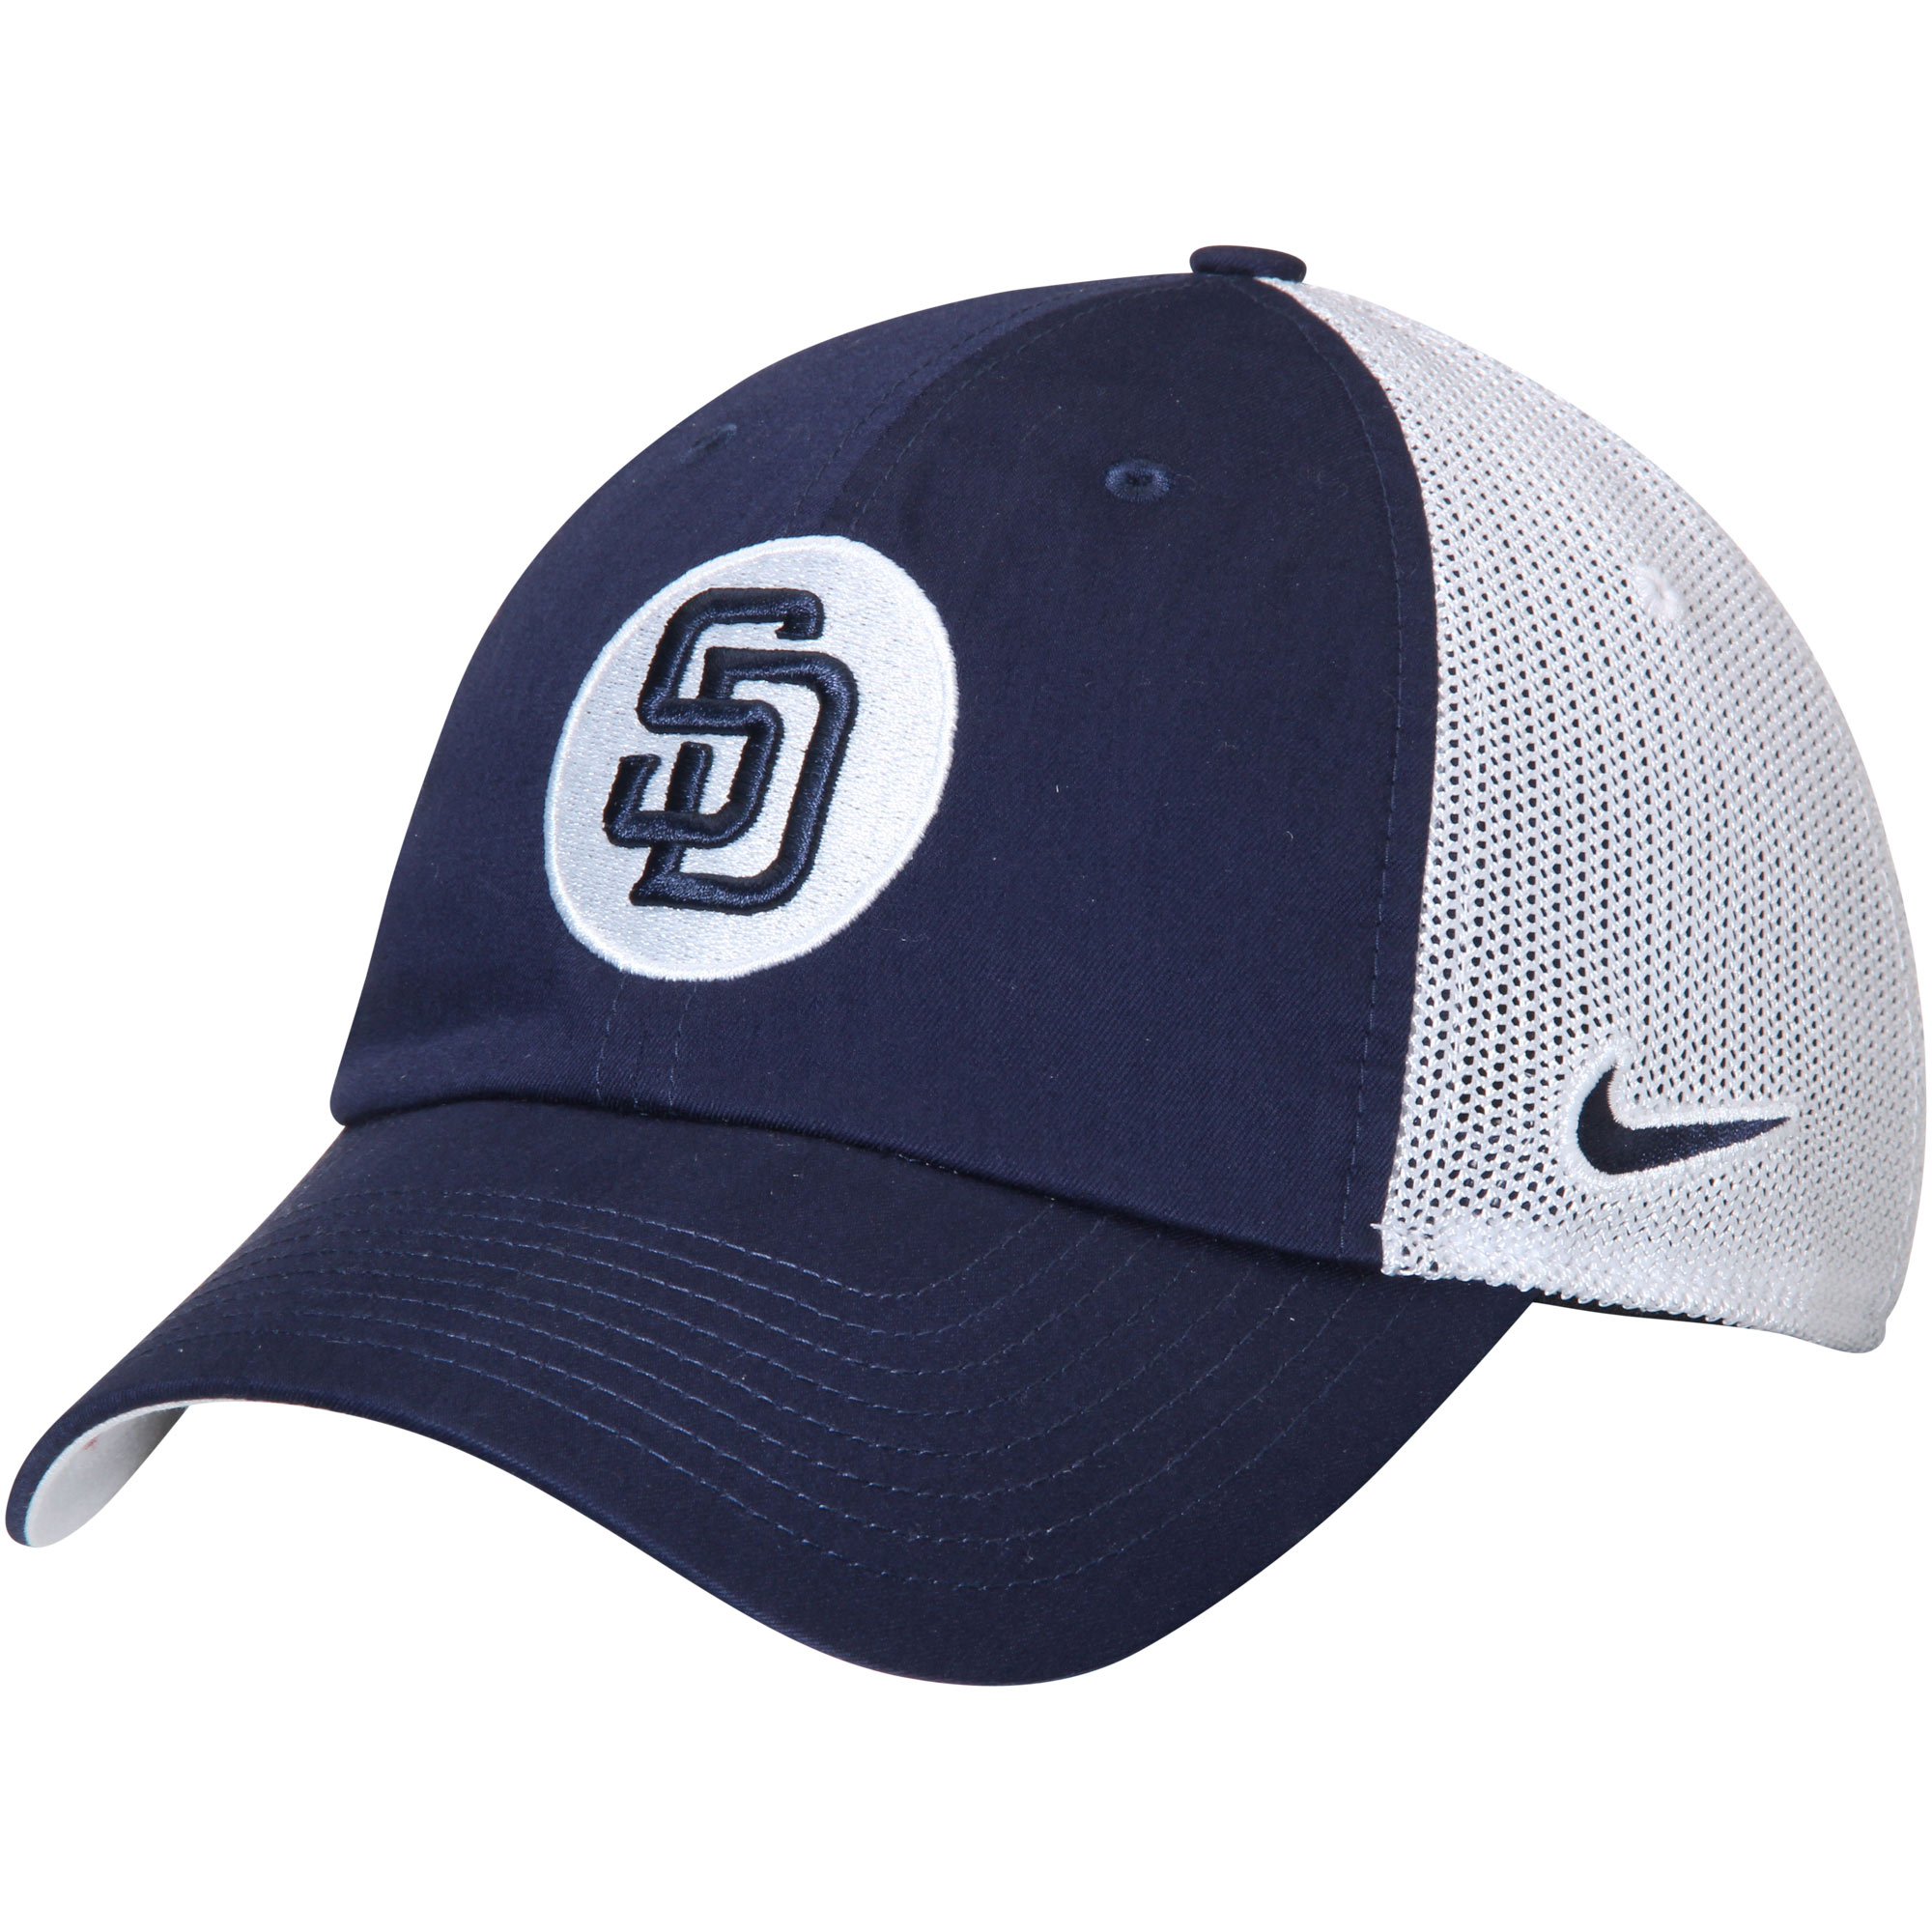 San Diego Padres Nike Heritage 86 Fabric Mix Performance Adjustable Hat - Navy/White - OSFA